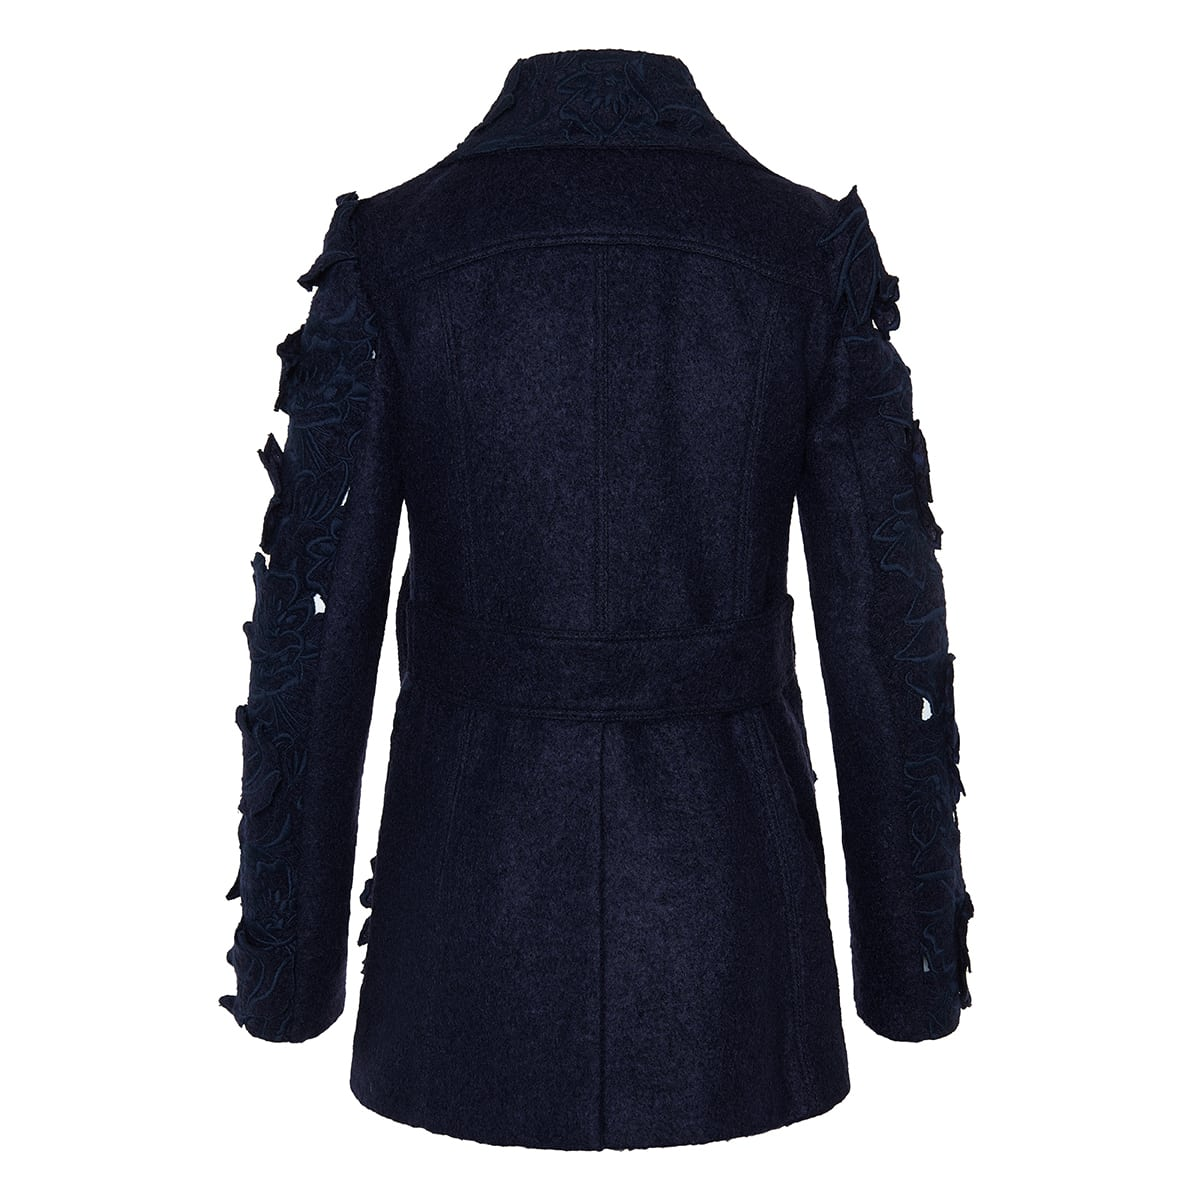 Felt pea coat with floral embroidery